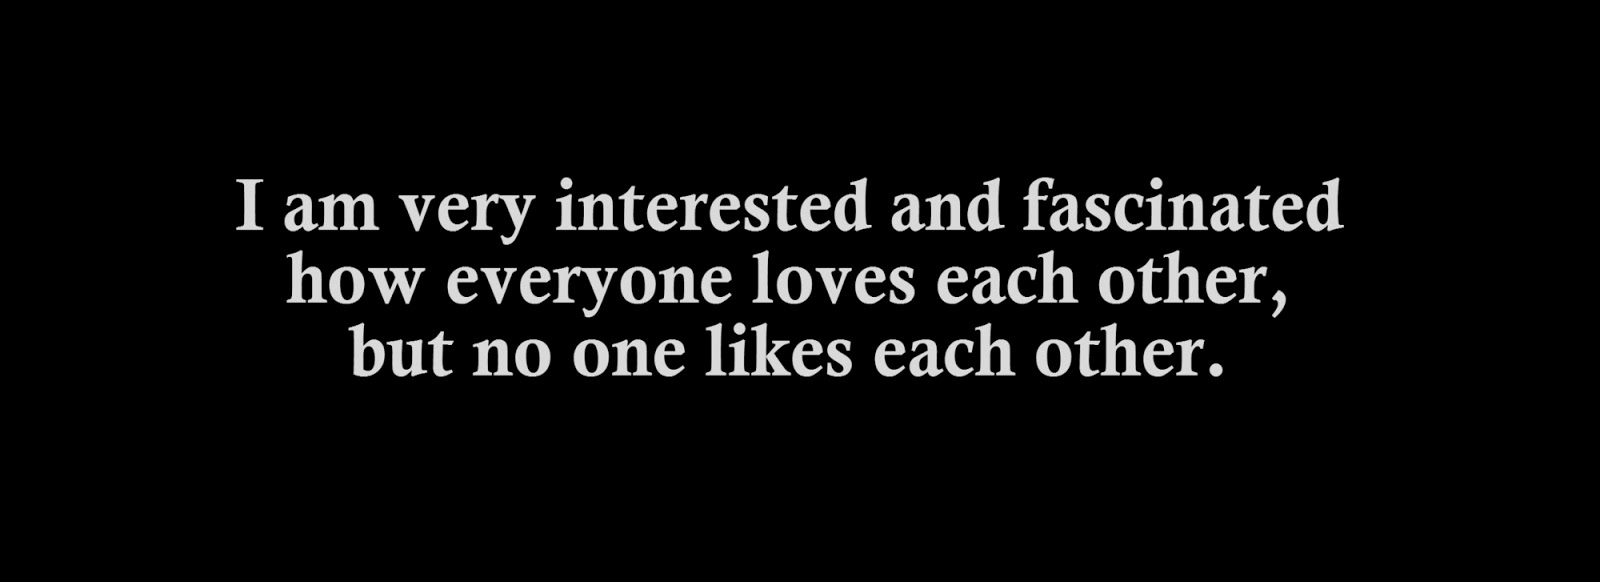 I am very interested and fascinated how everyone loves each other, but no one likes each other.